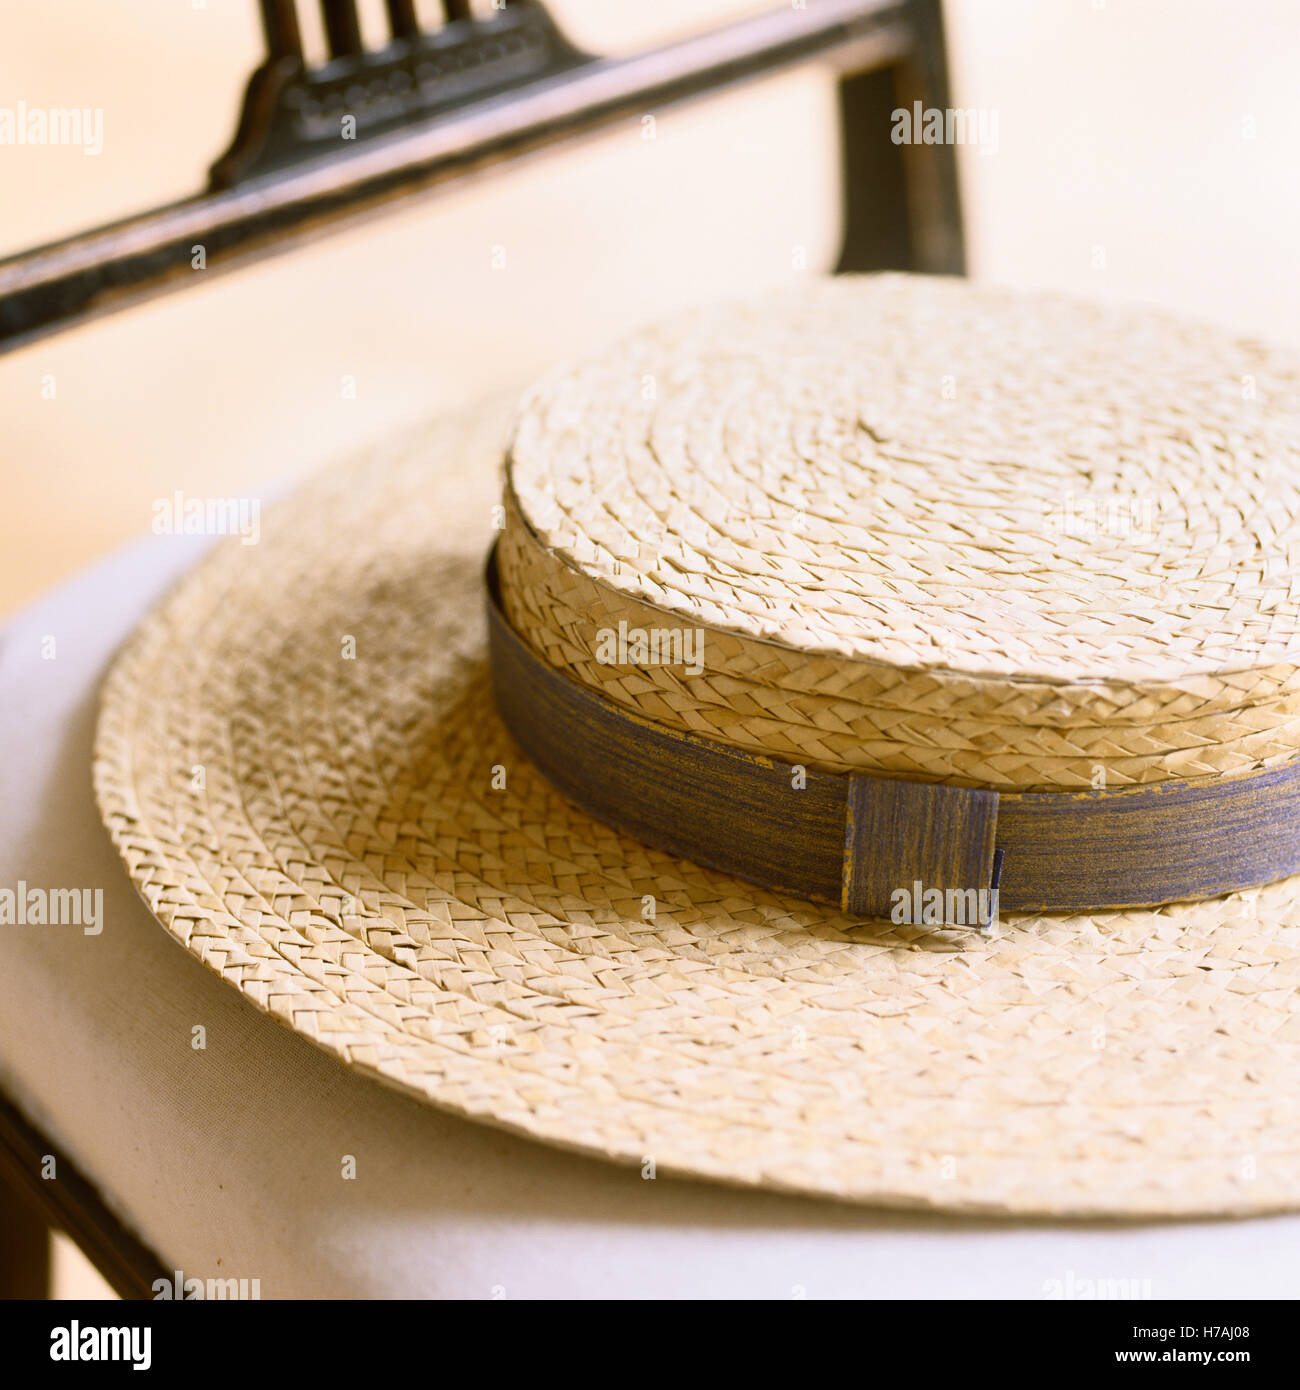 Straw boater hat with ribbon, historical replica by Isabelle de Borchgrave - Stock Image